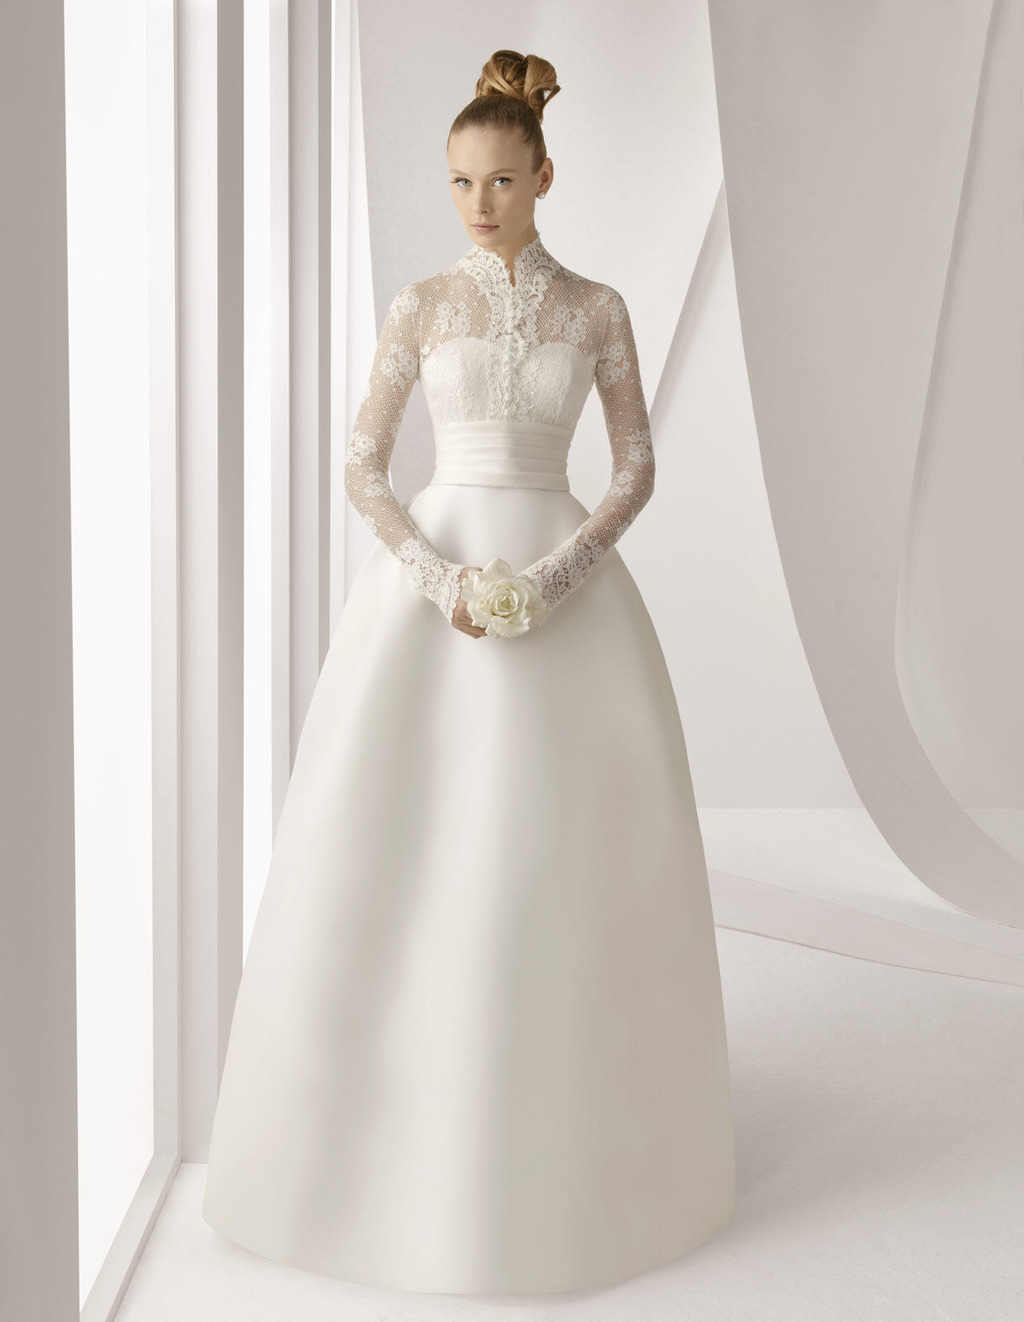 Princess Wedding Dresses With Sleeves Viewing Gallery